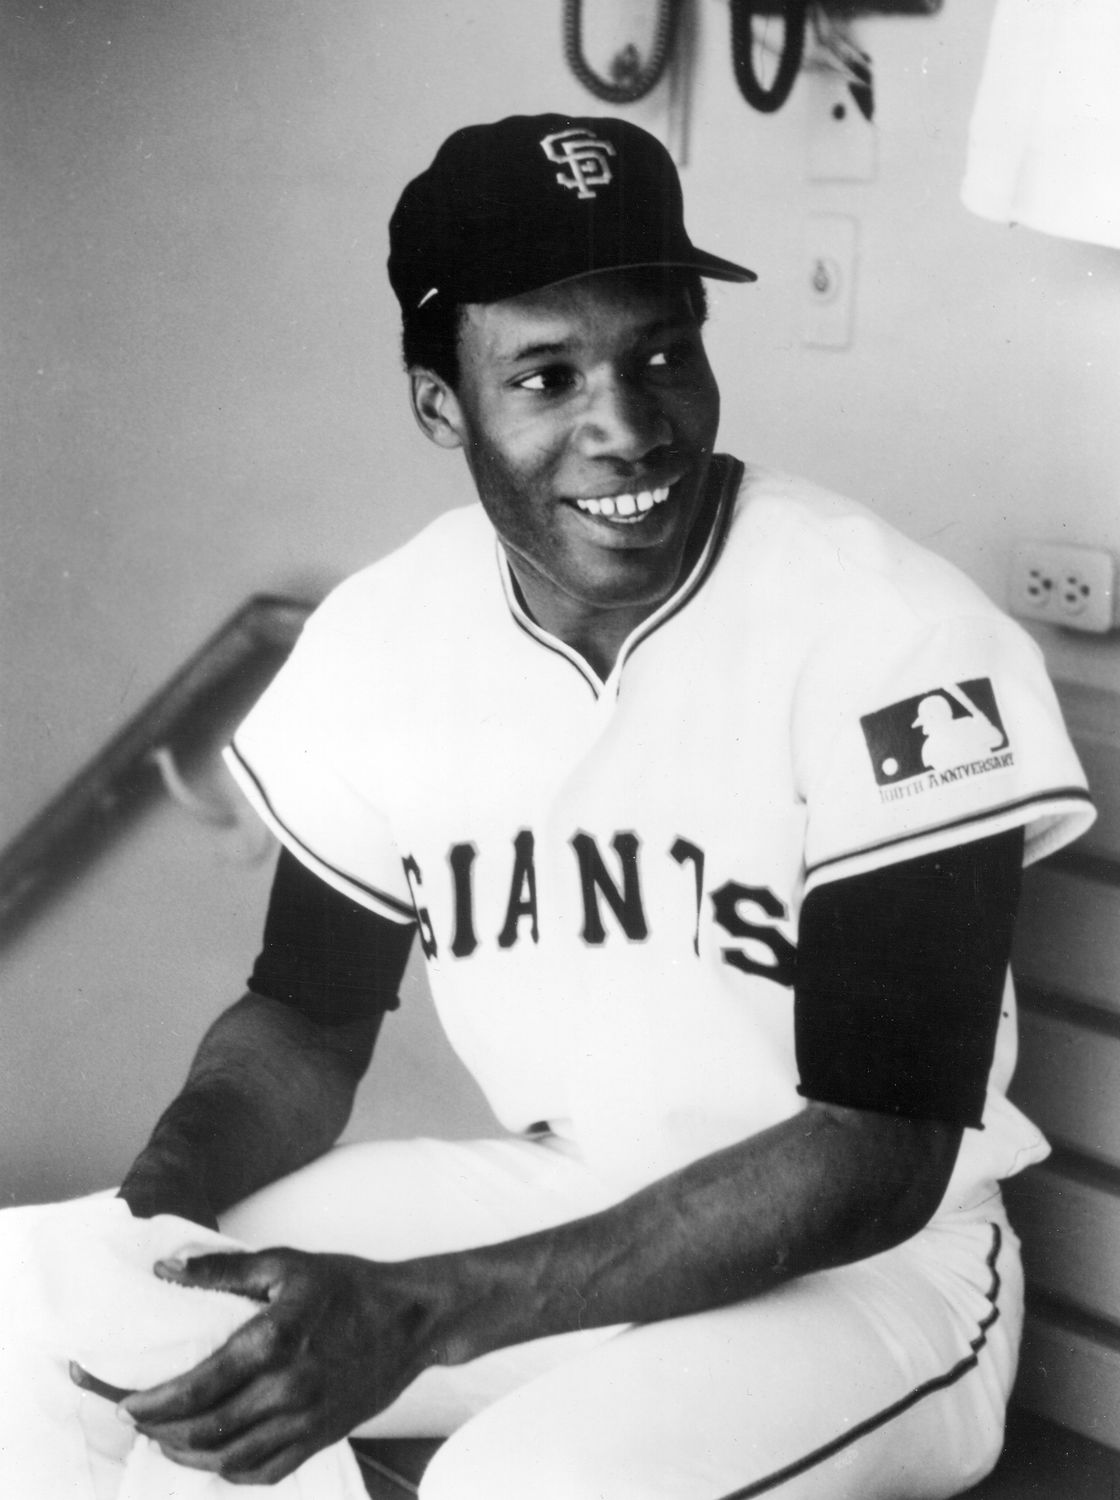 59c0122ebcf Bobby Bonds of the San Francisco Giants. BL-4217-70 (National Baseball Hall  of Fame Library)